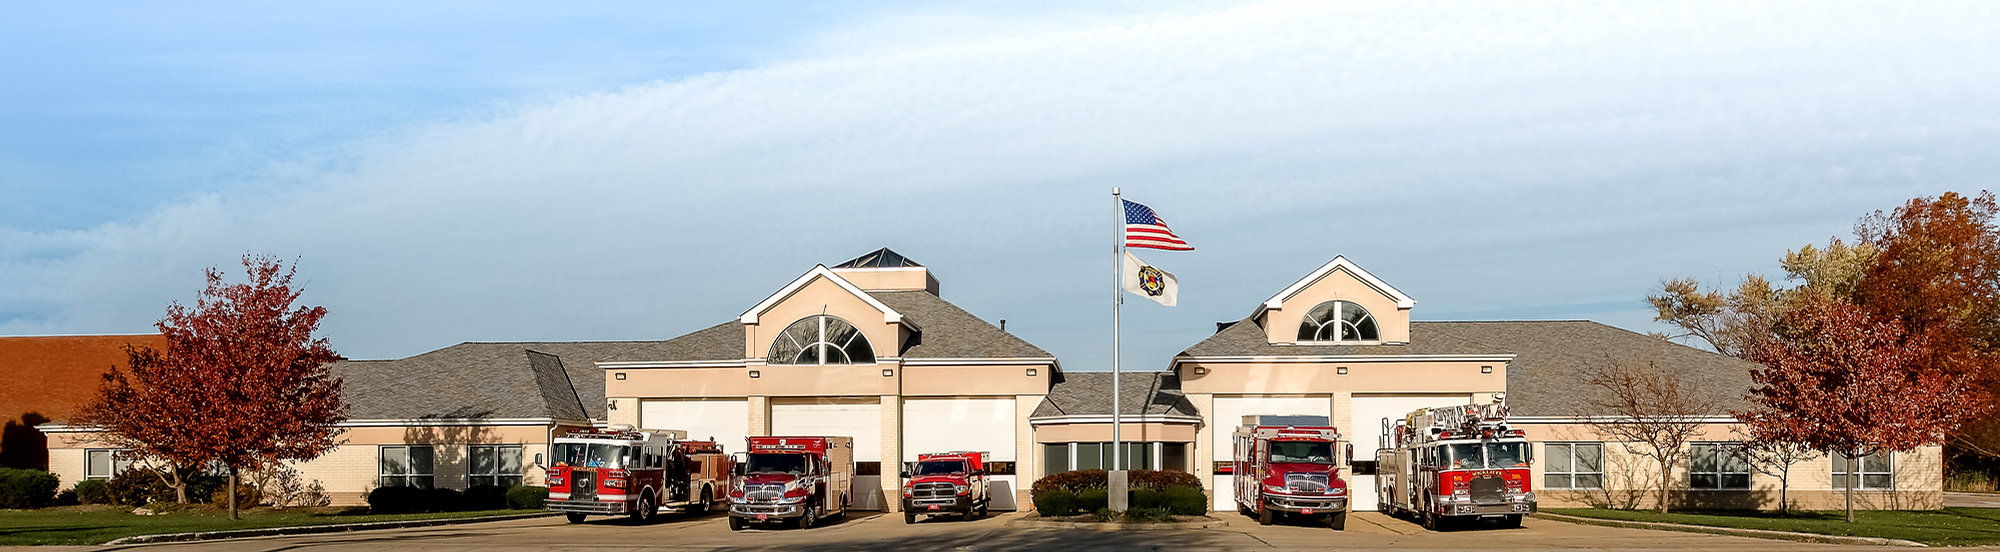 Wickliffe Fire Department